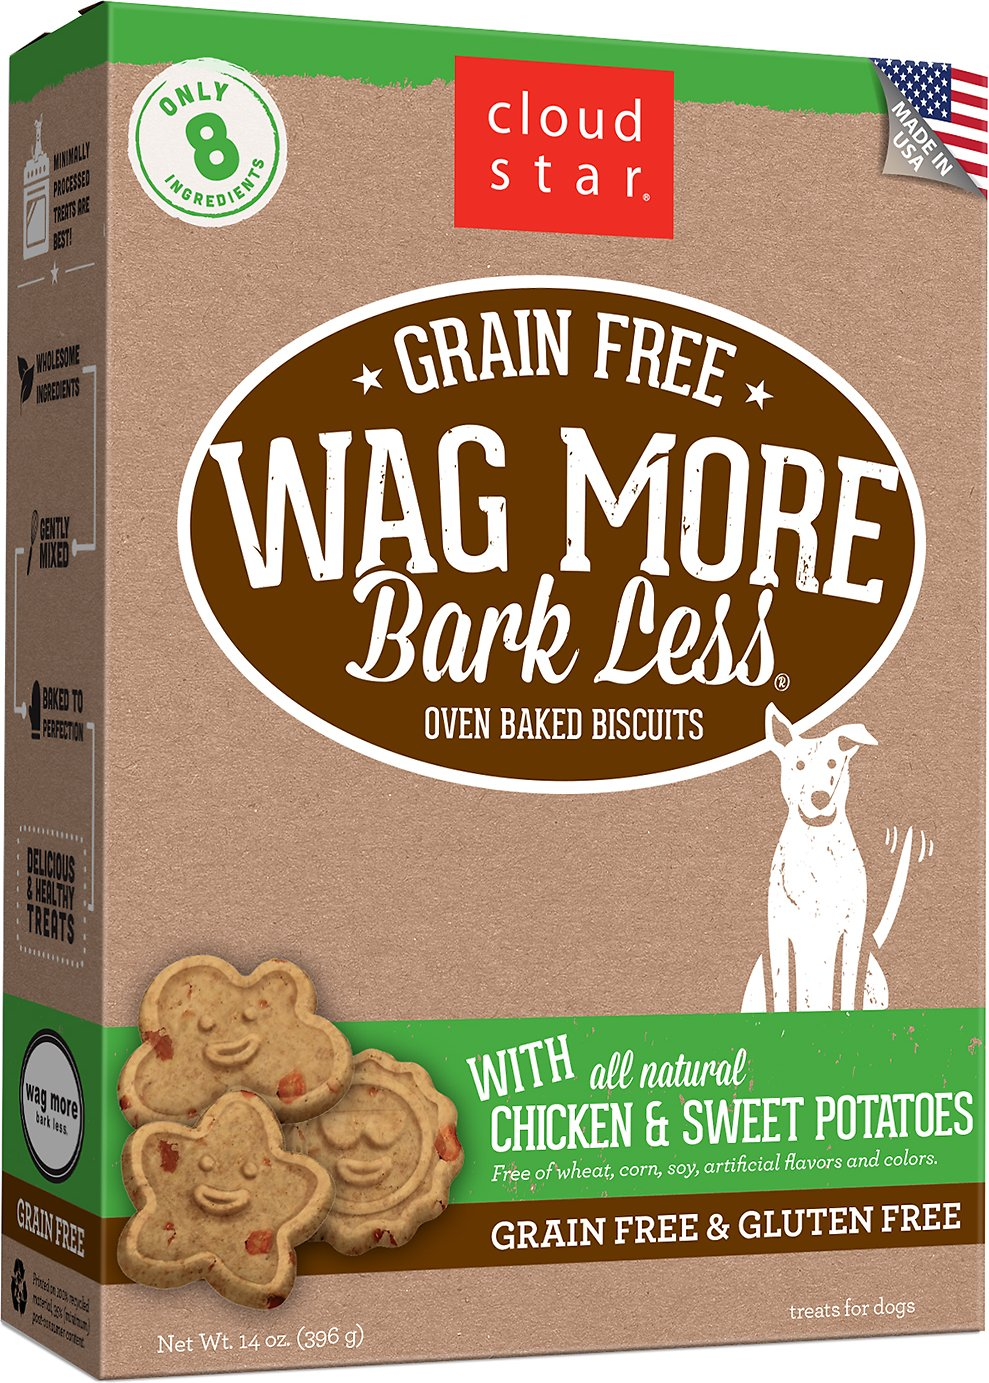 Cloud Star Wag More Bark Less Grain-Free Oven Baked with Chicken & Sweet Potatoes Dog Treats Image